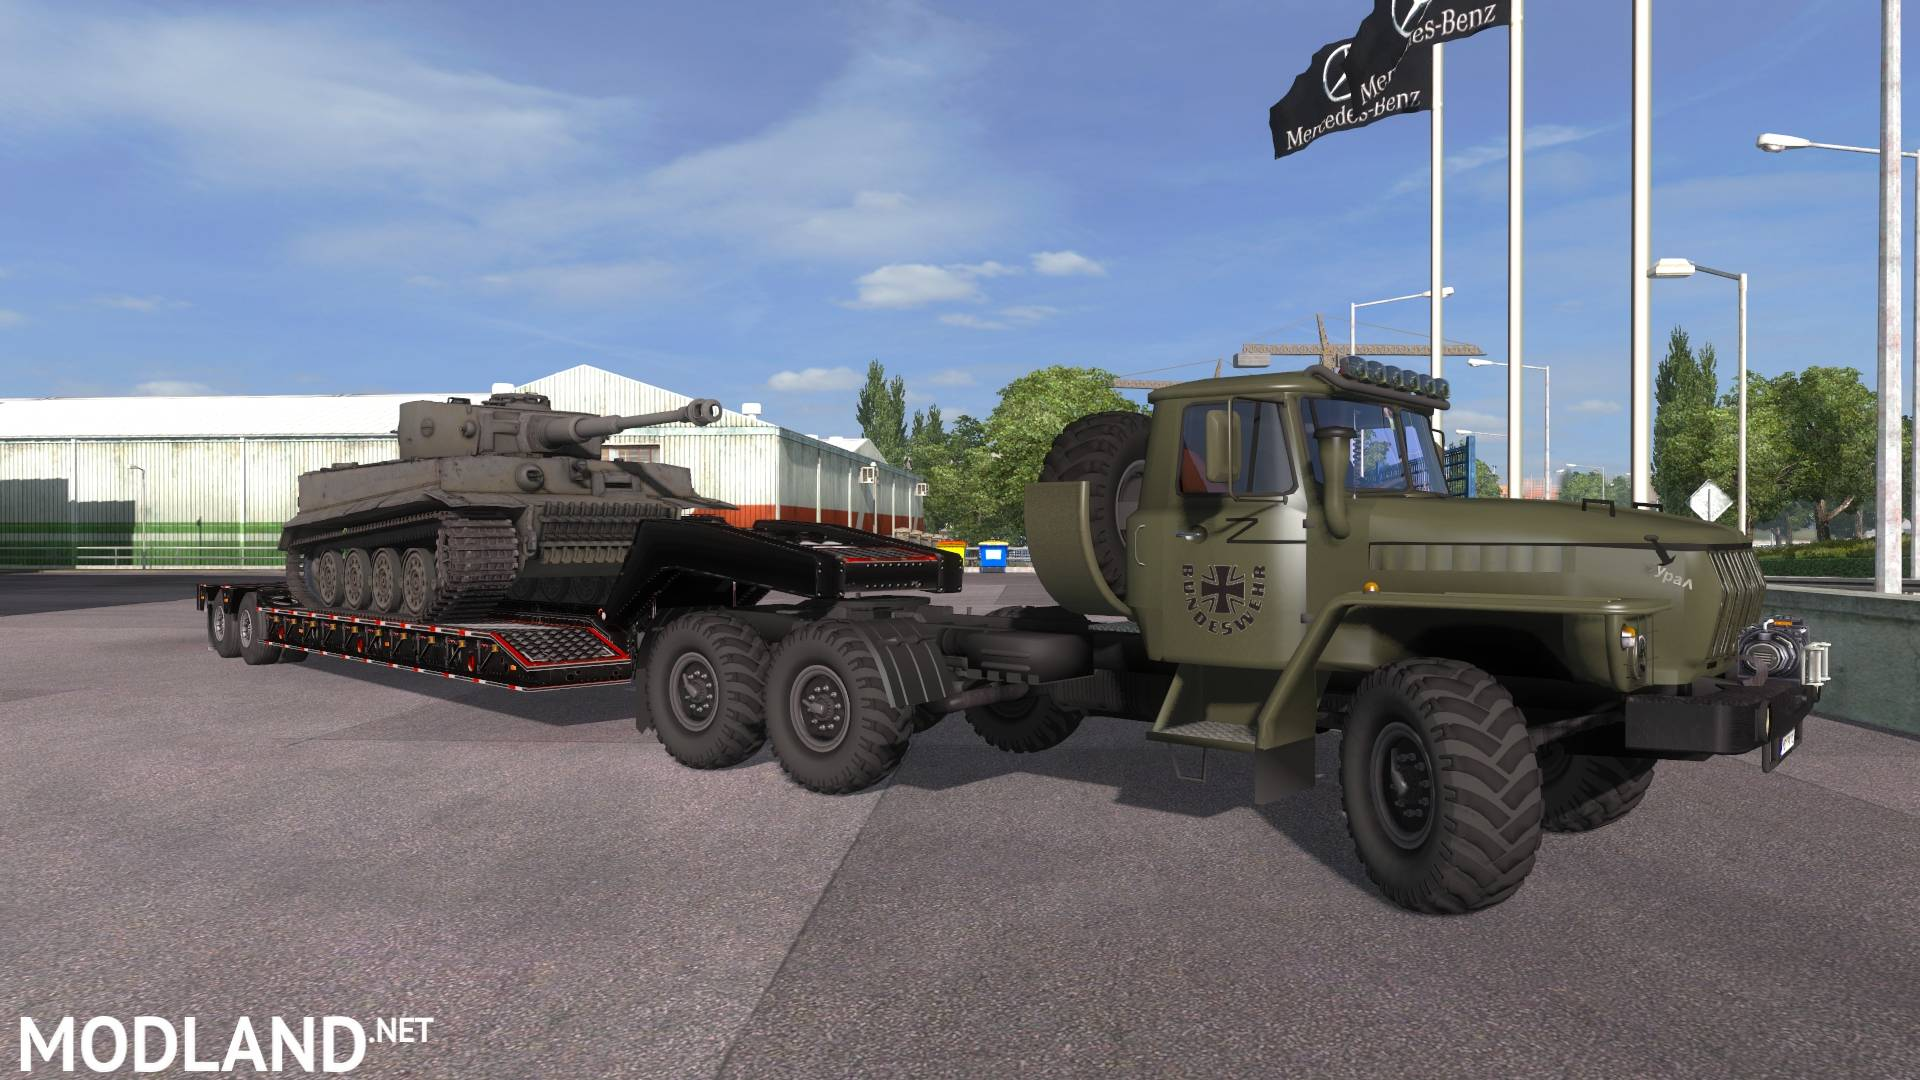 Chevrolet Cheyenne Parts furthermore Maz 537 together with One Sweet Suzuki Gs500 Chopper From Anarchy Custom Romania 60952 furthermore Spintires Mods together with Erf  truck manufacturer. on ural engine truck